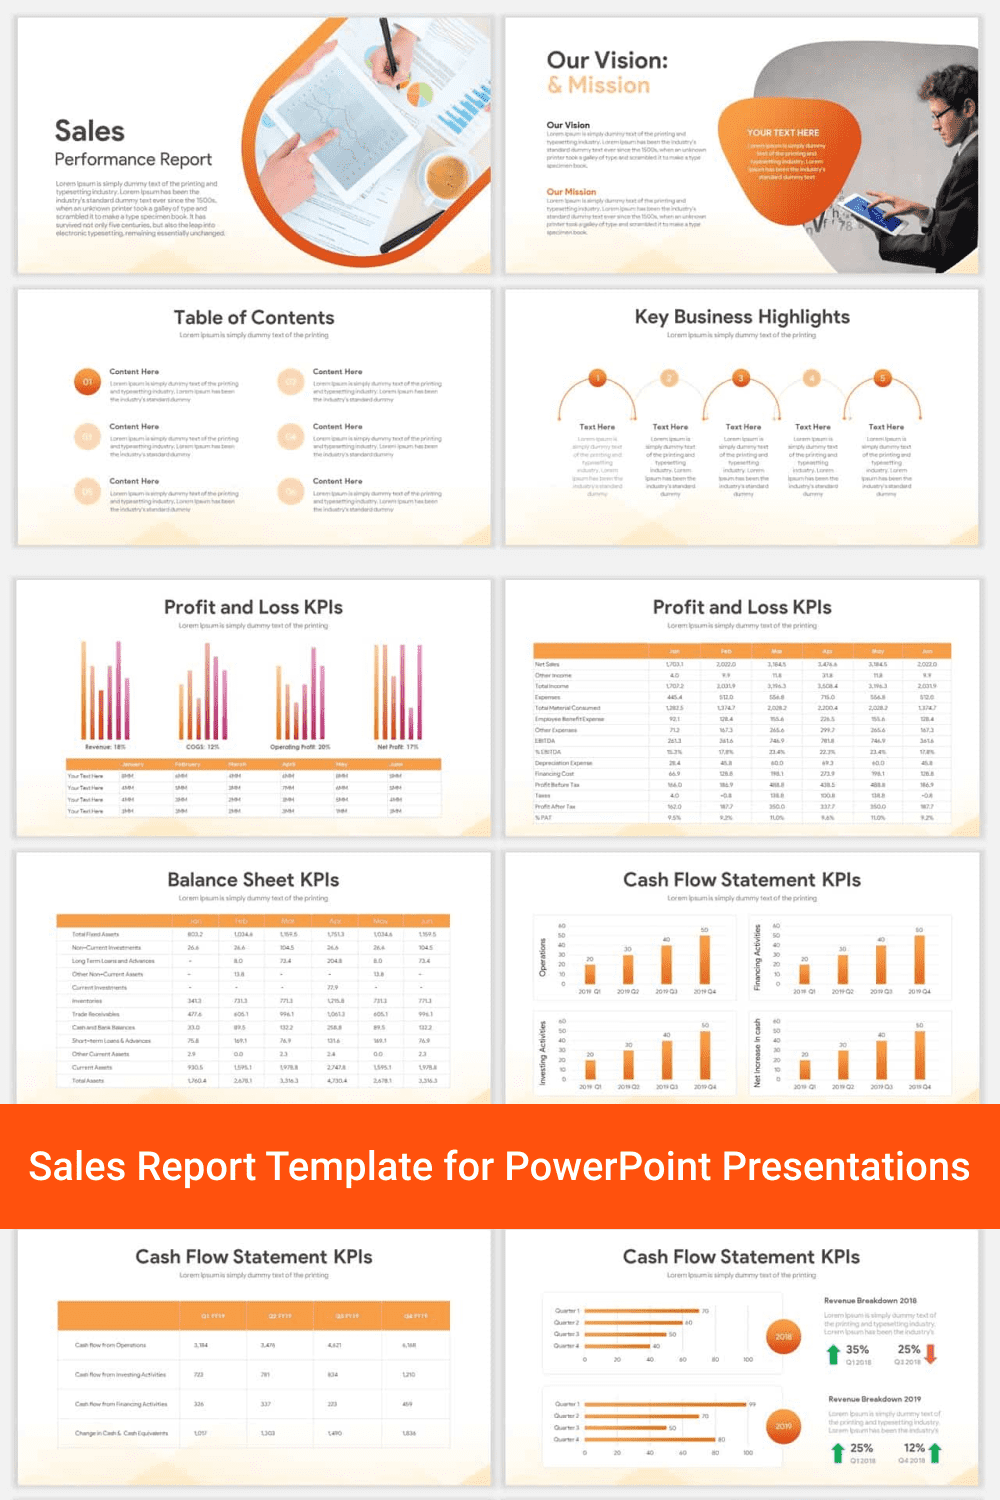 Sales Report Template for PowerPoint Presentations.